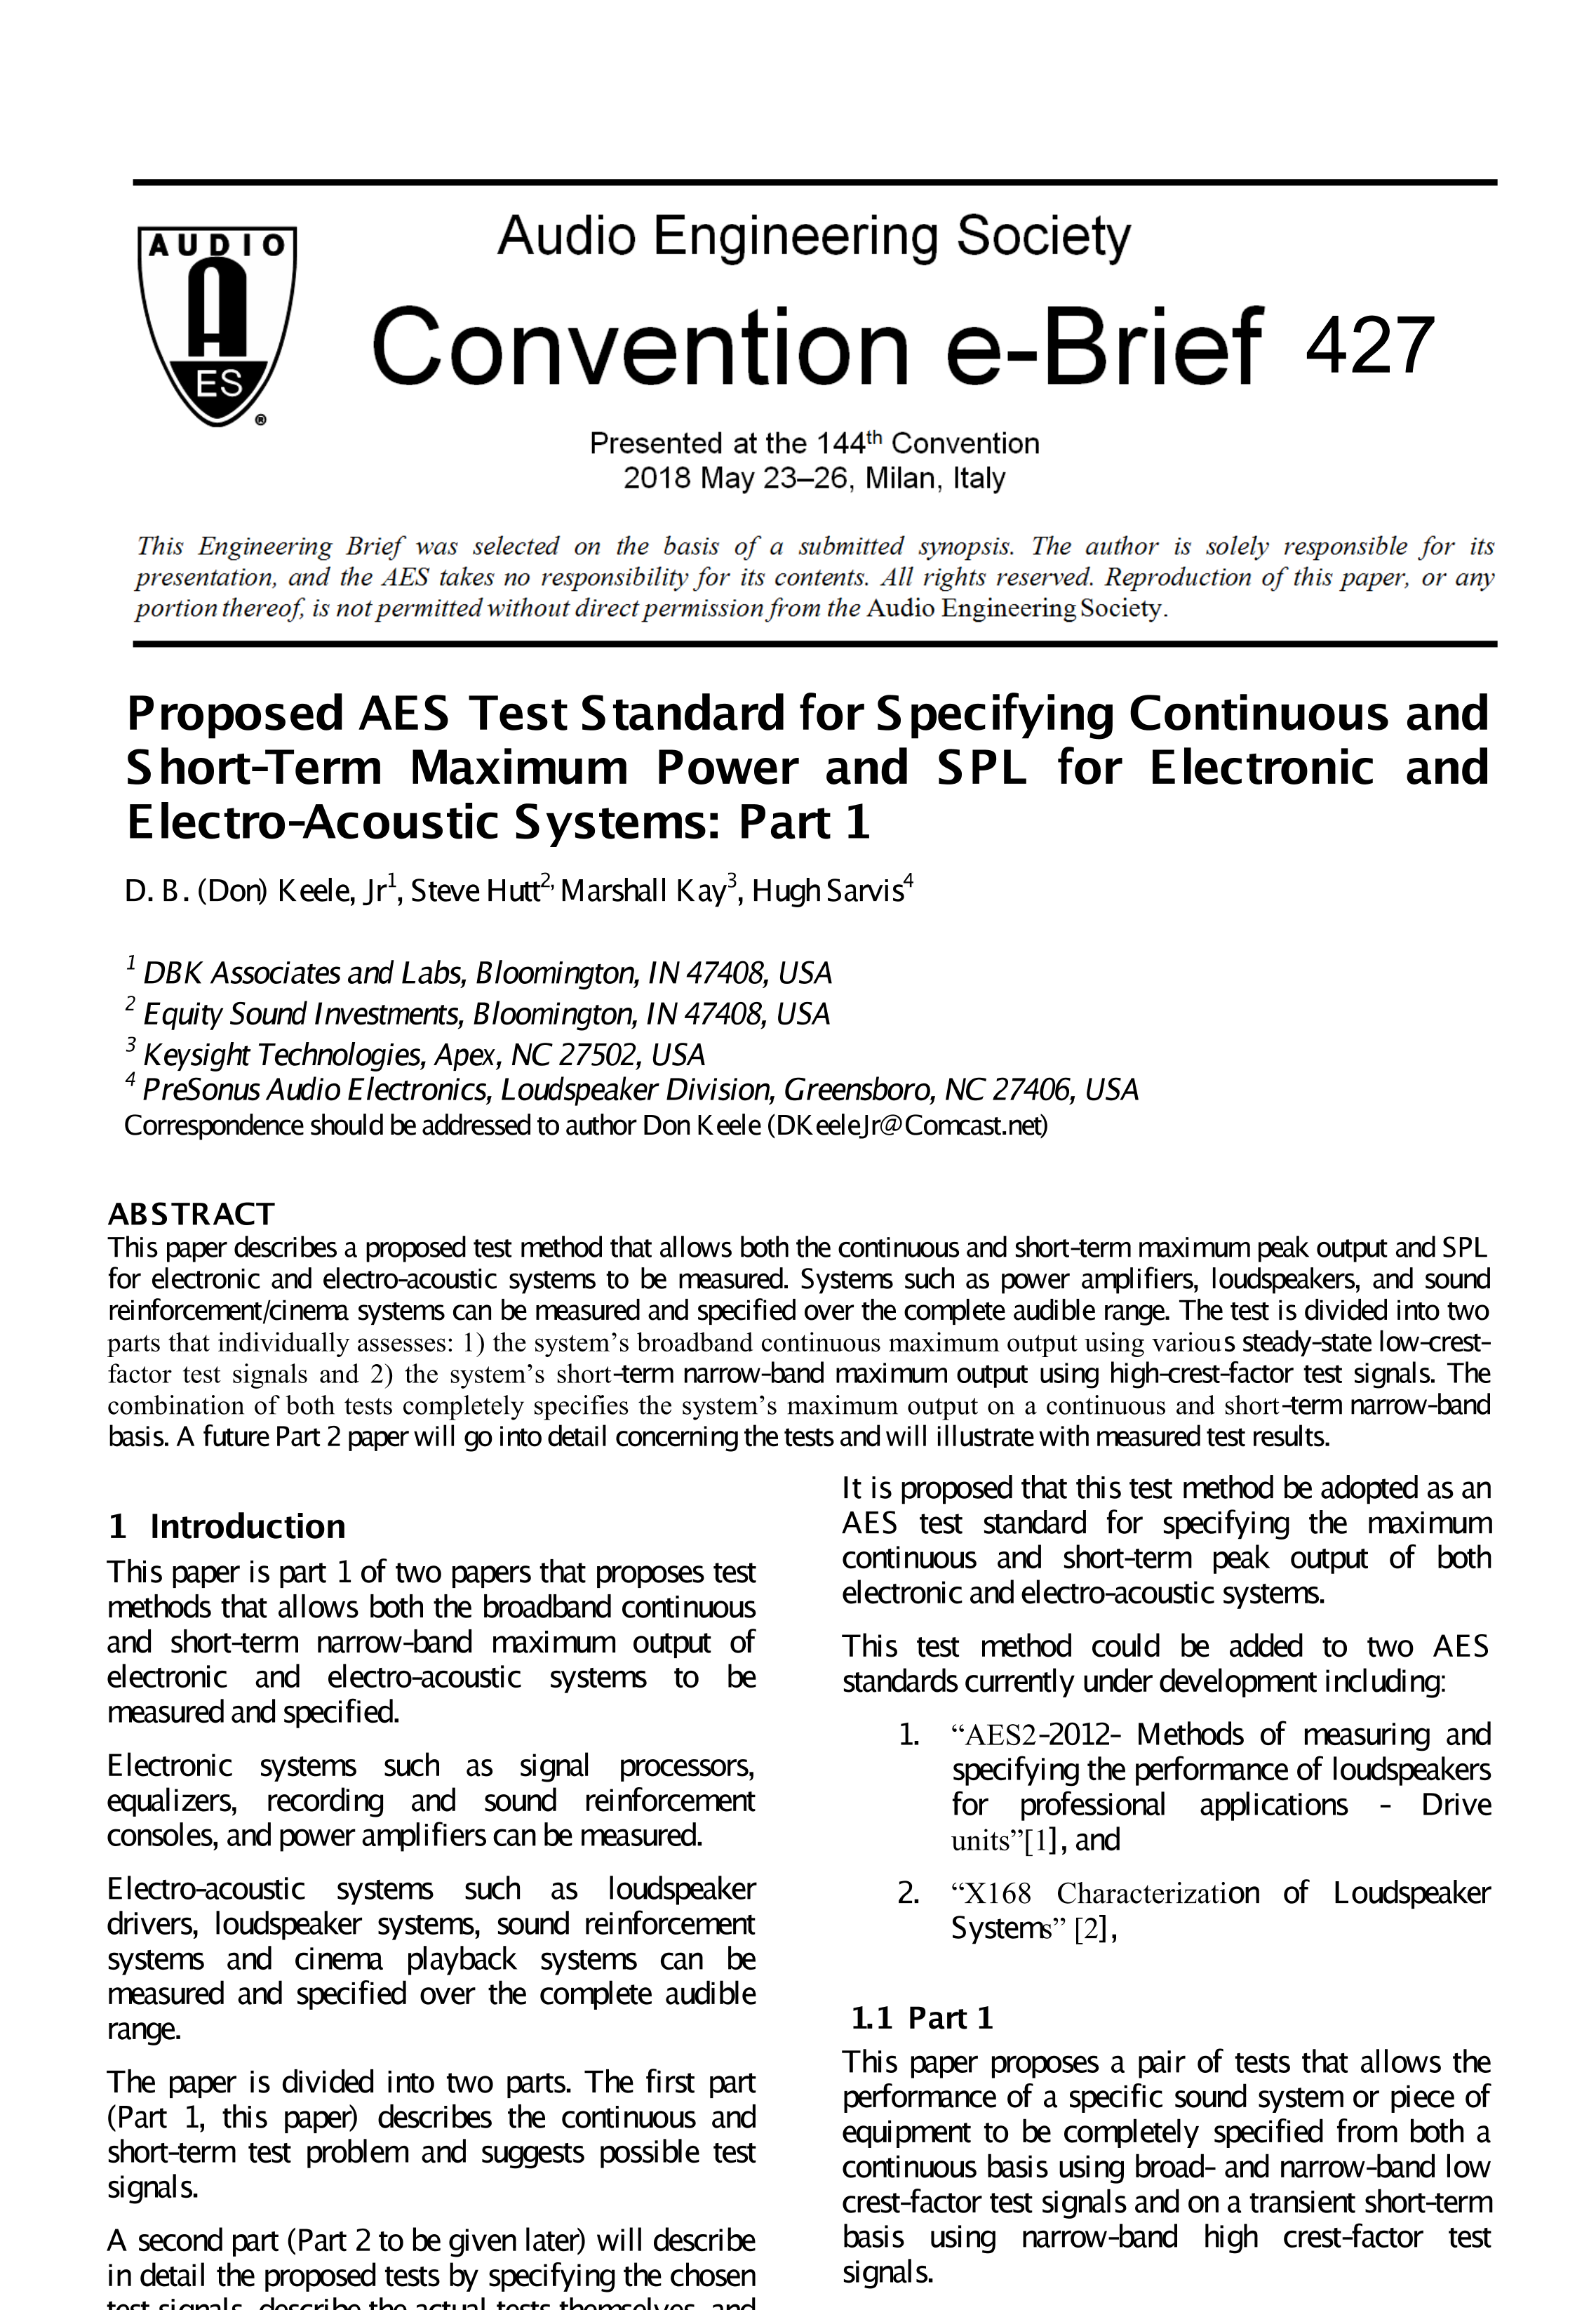 AES E-Library » Proposed AES Test Standard for Specifying